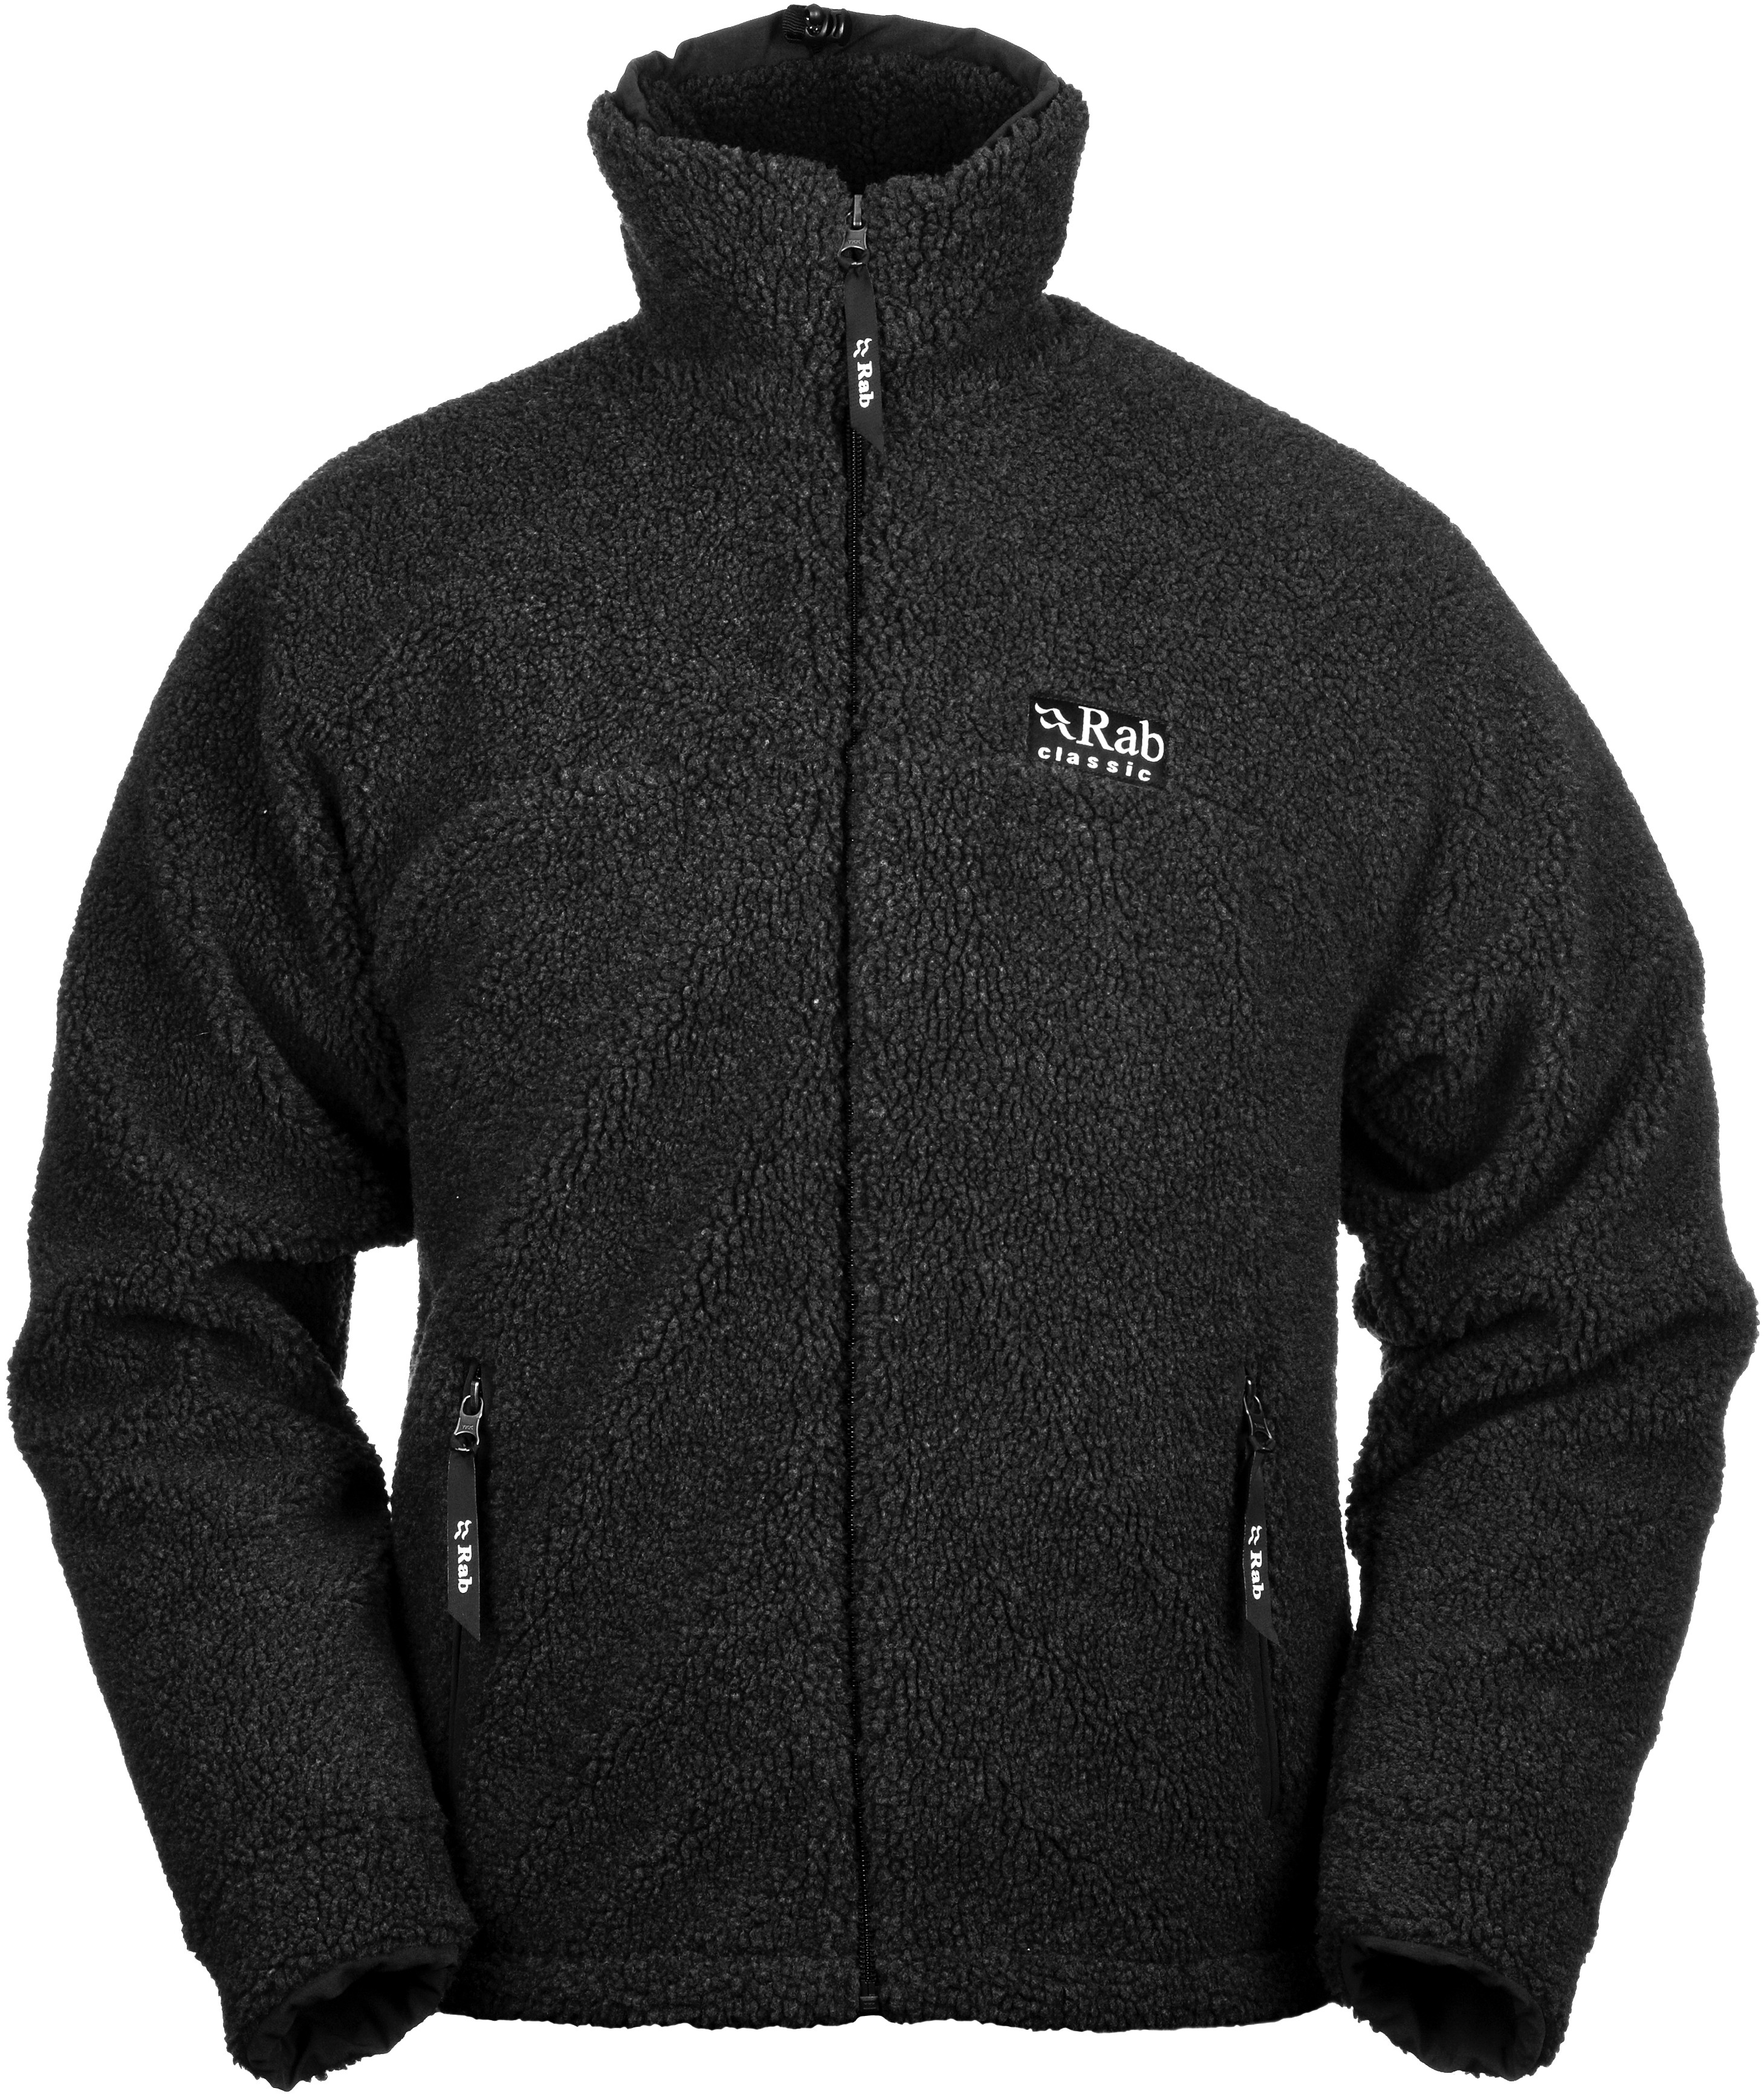 Rab Double Pile Jacket - Men's